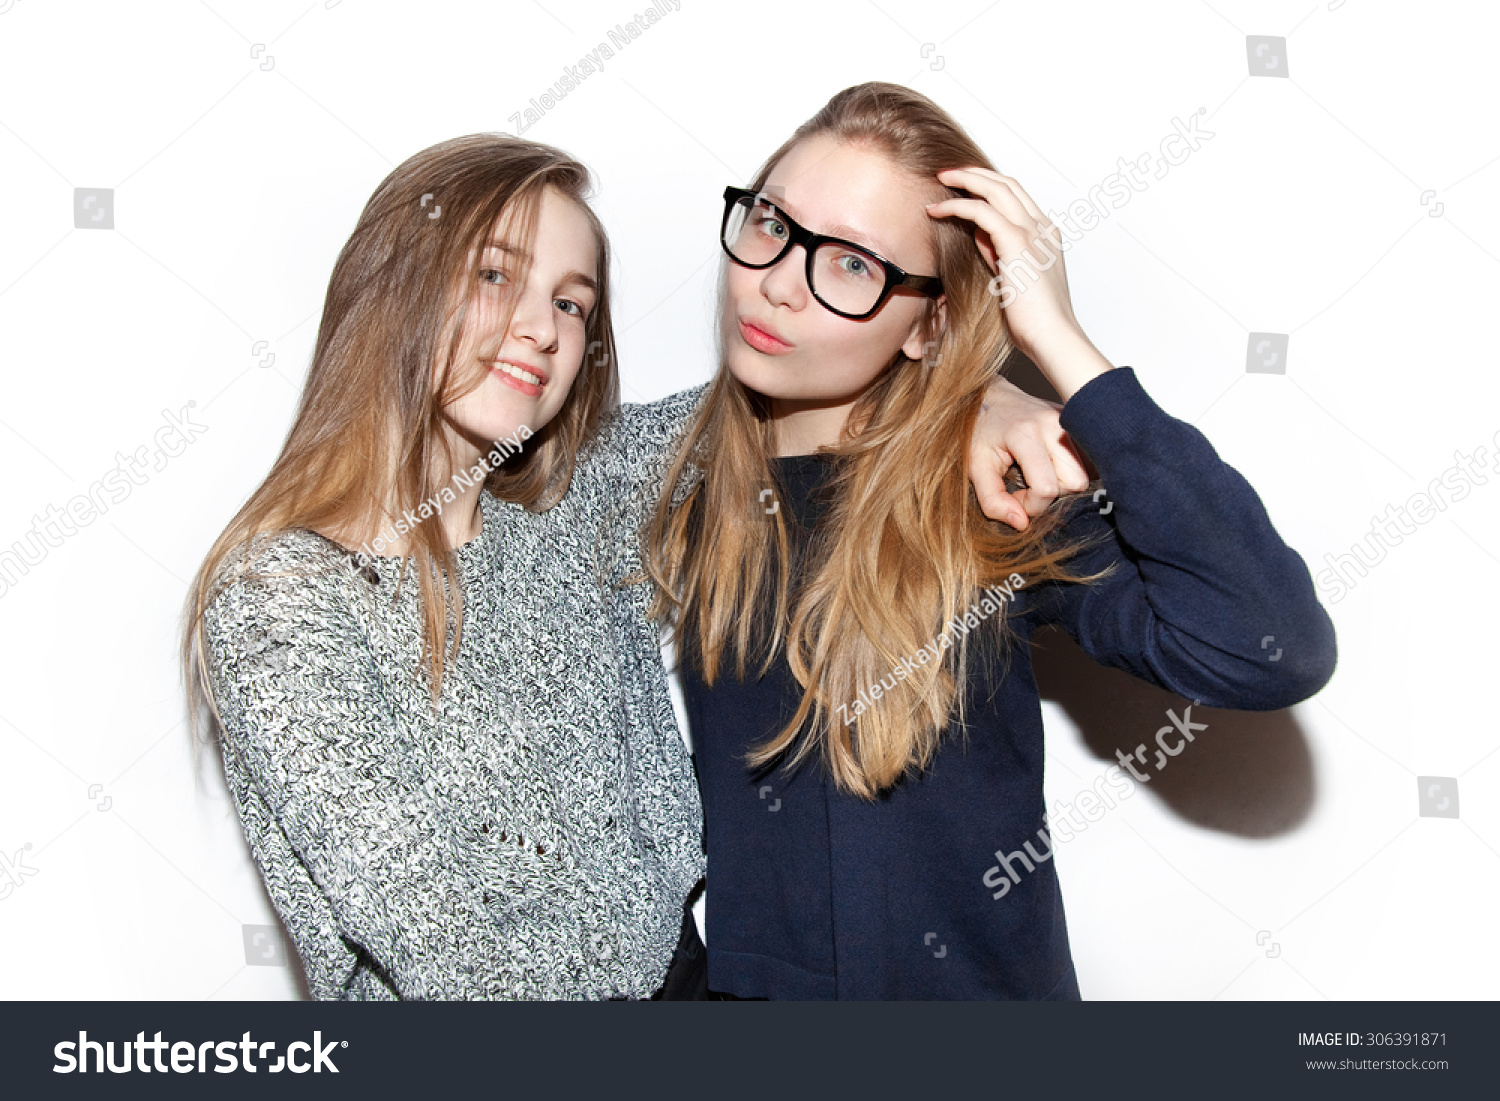 Two Young Girls Hipsters Teenagers Friendly, Cuddling ...